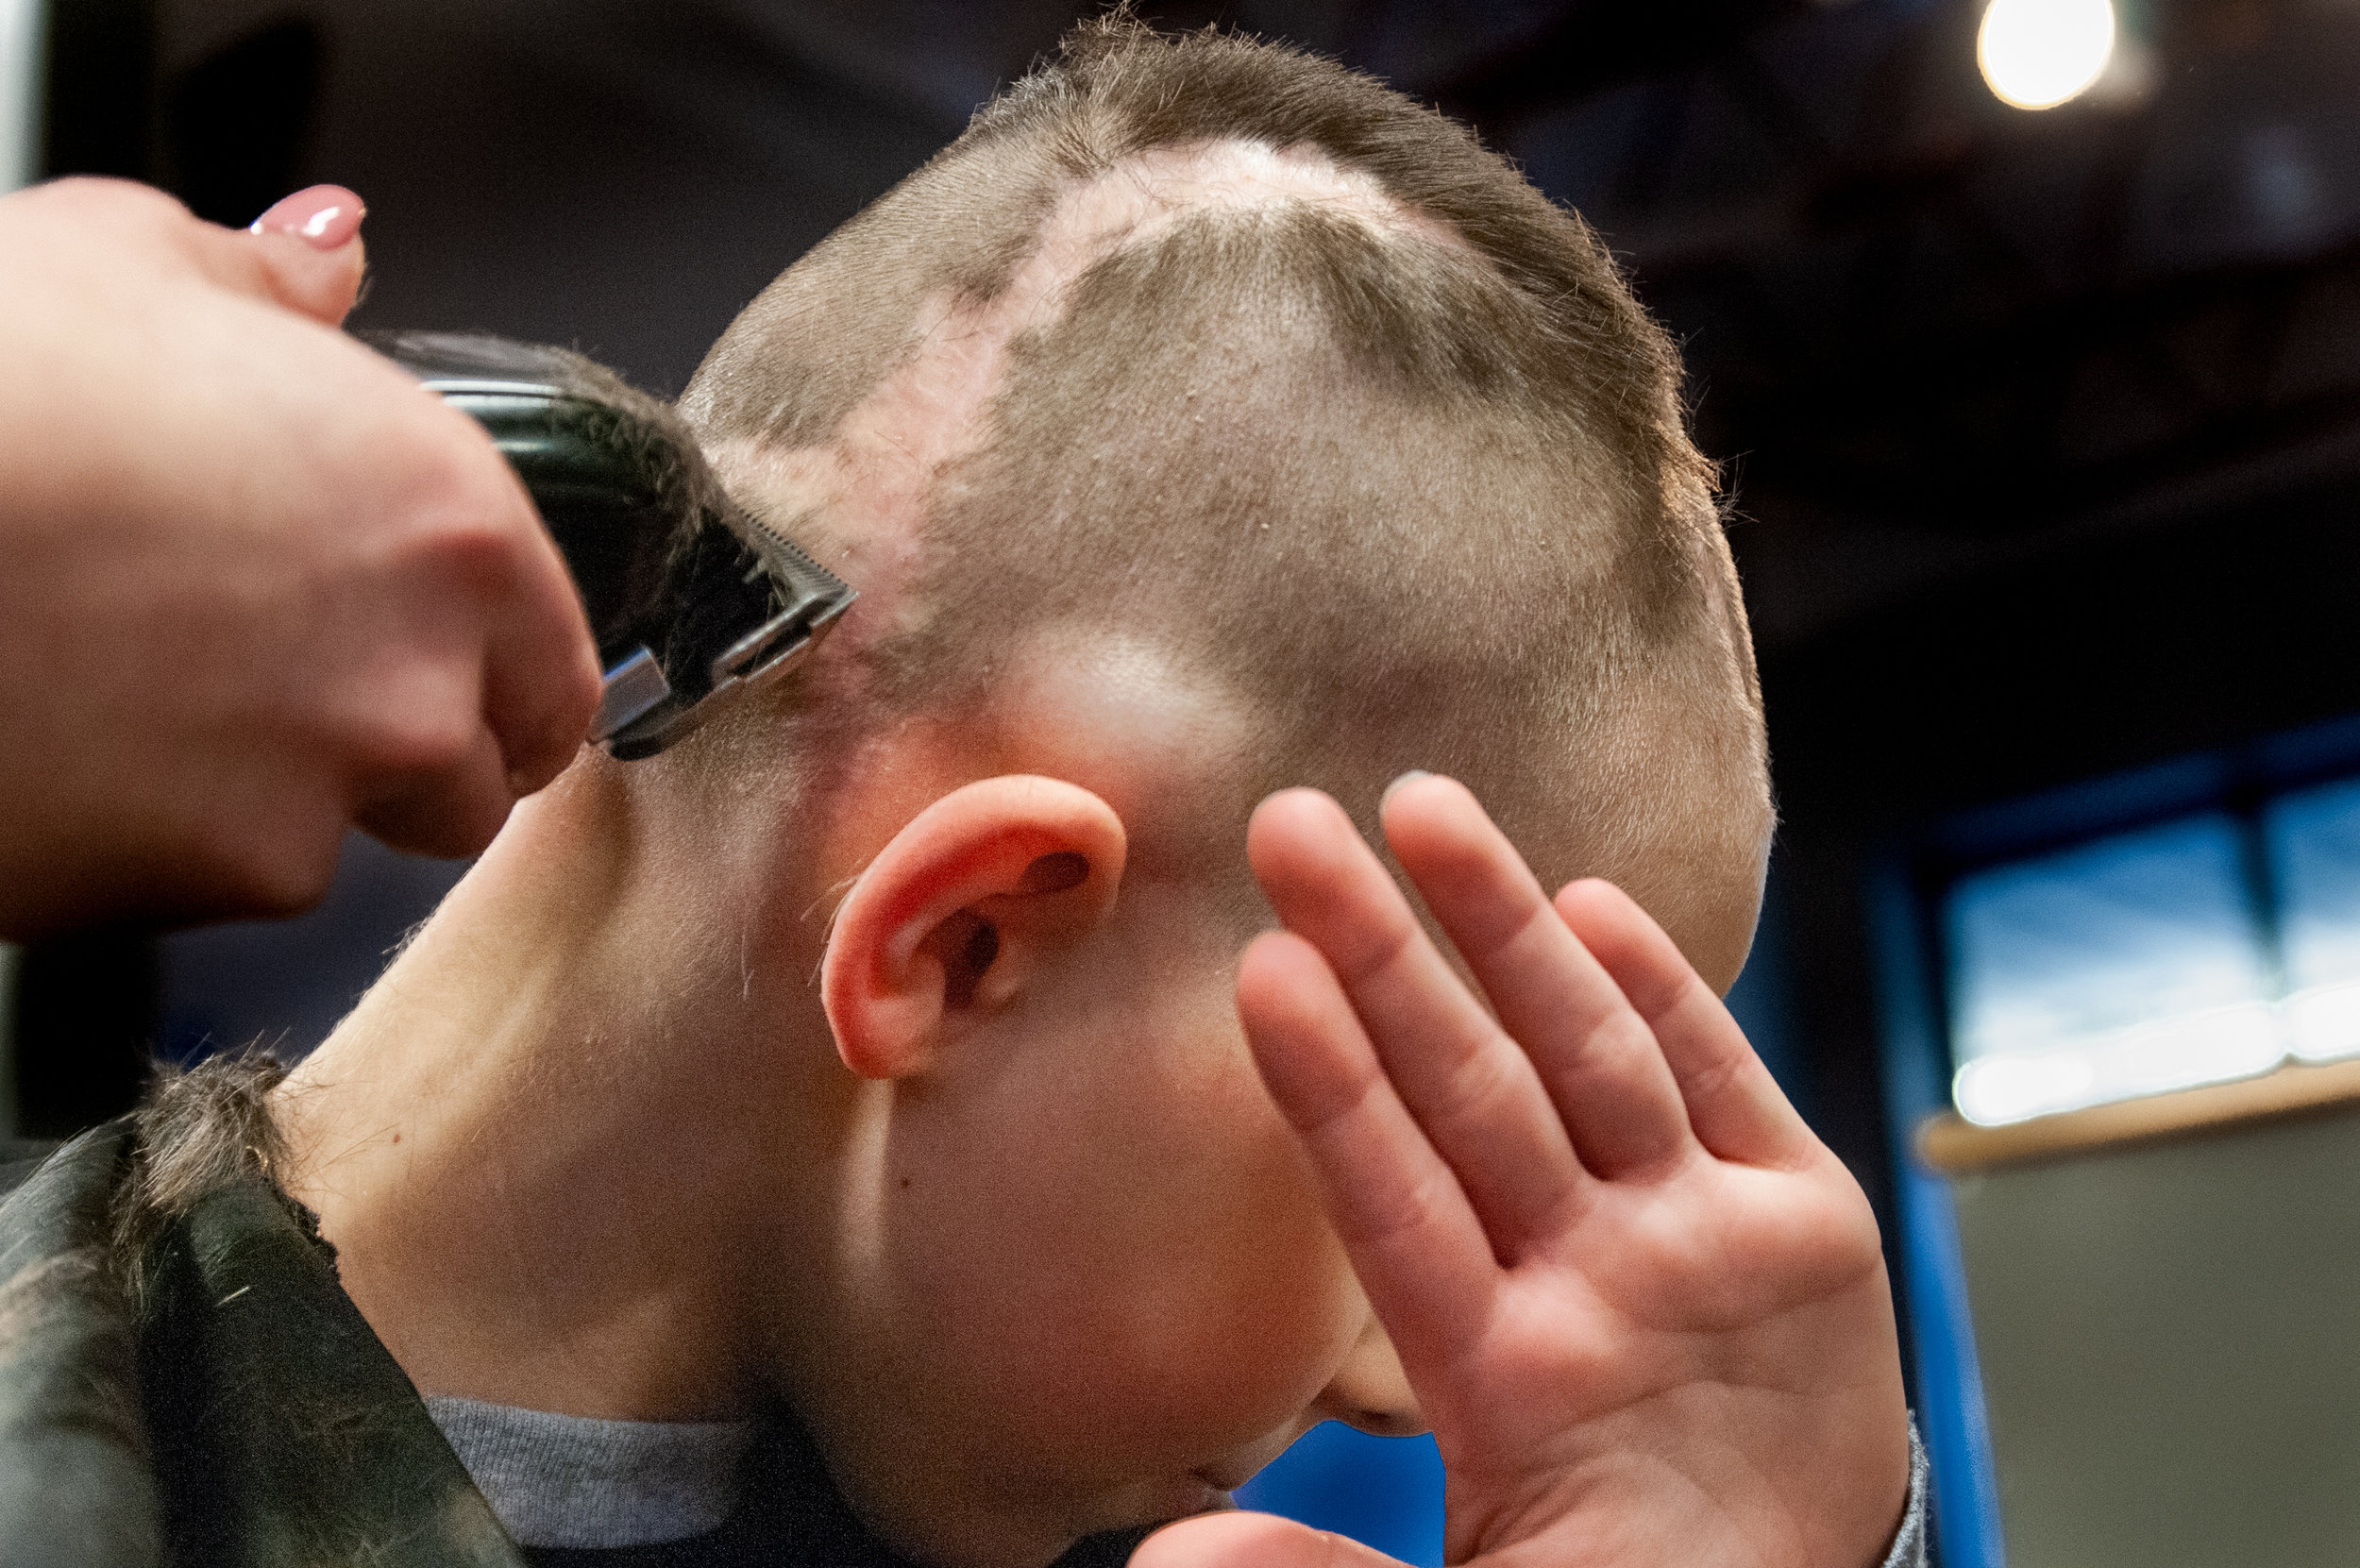 Christian hides his face from both the camera and falling hair during a haircut prior to his fifth brain surgery in Feb. 2019. The bump above his right ear is a tumor doctors will remove during surgery to test further against medications and to alleviate Christian's head pain and aches.  | PHOTO BY   MADELINE GROSH